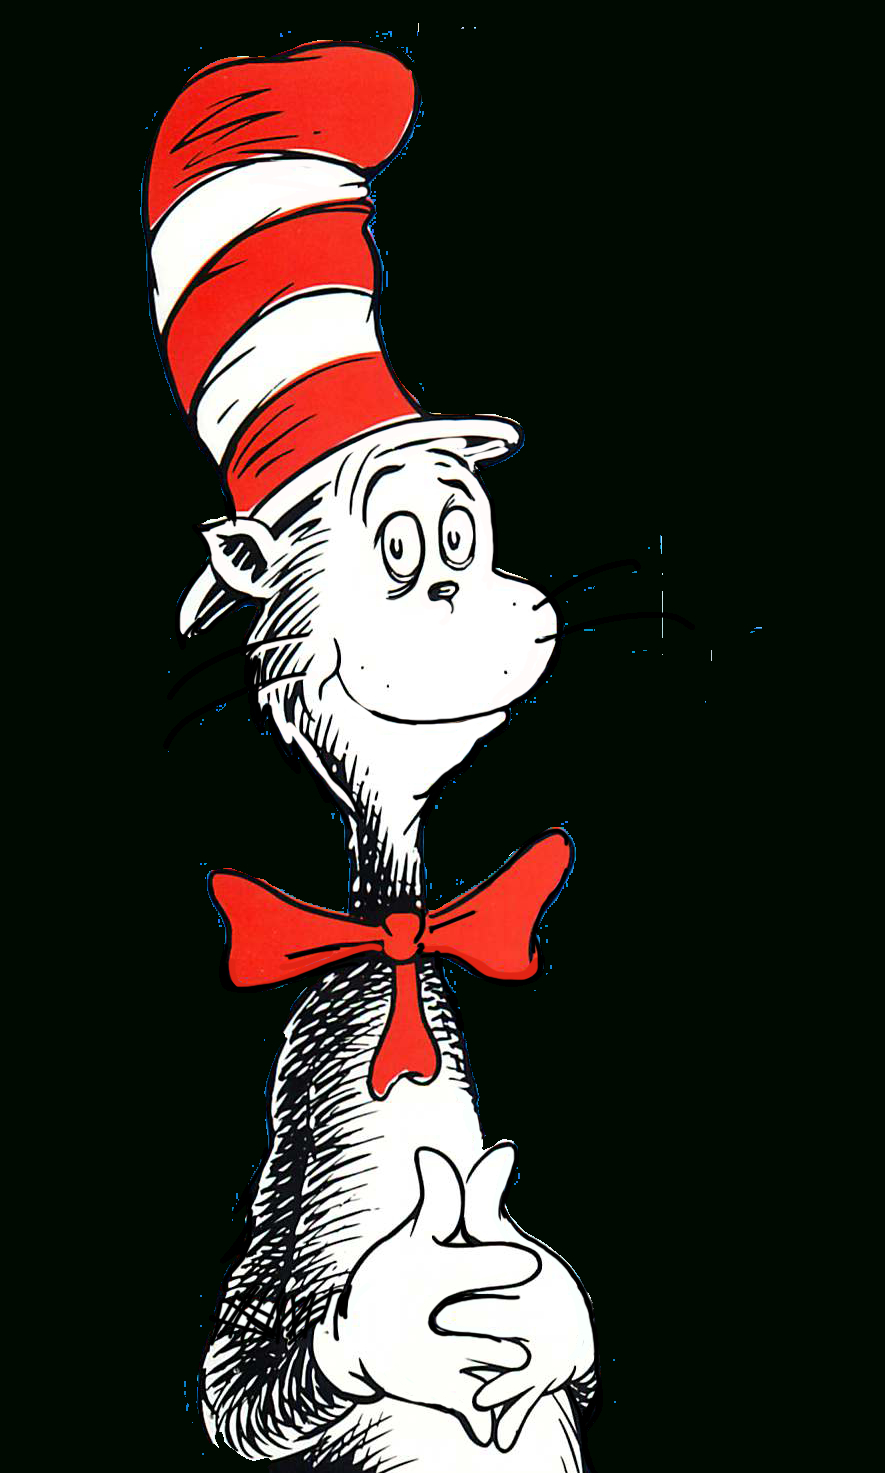 Pictures Of Dr Seuss Characters | Free Download Best Pictures Of Dr - Free Dr Seuss Characters Printables